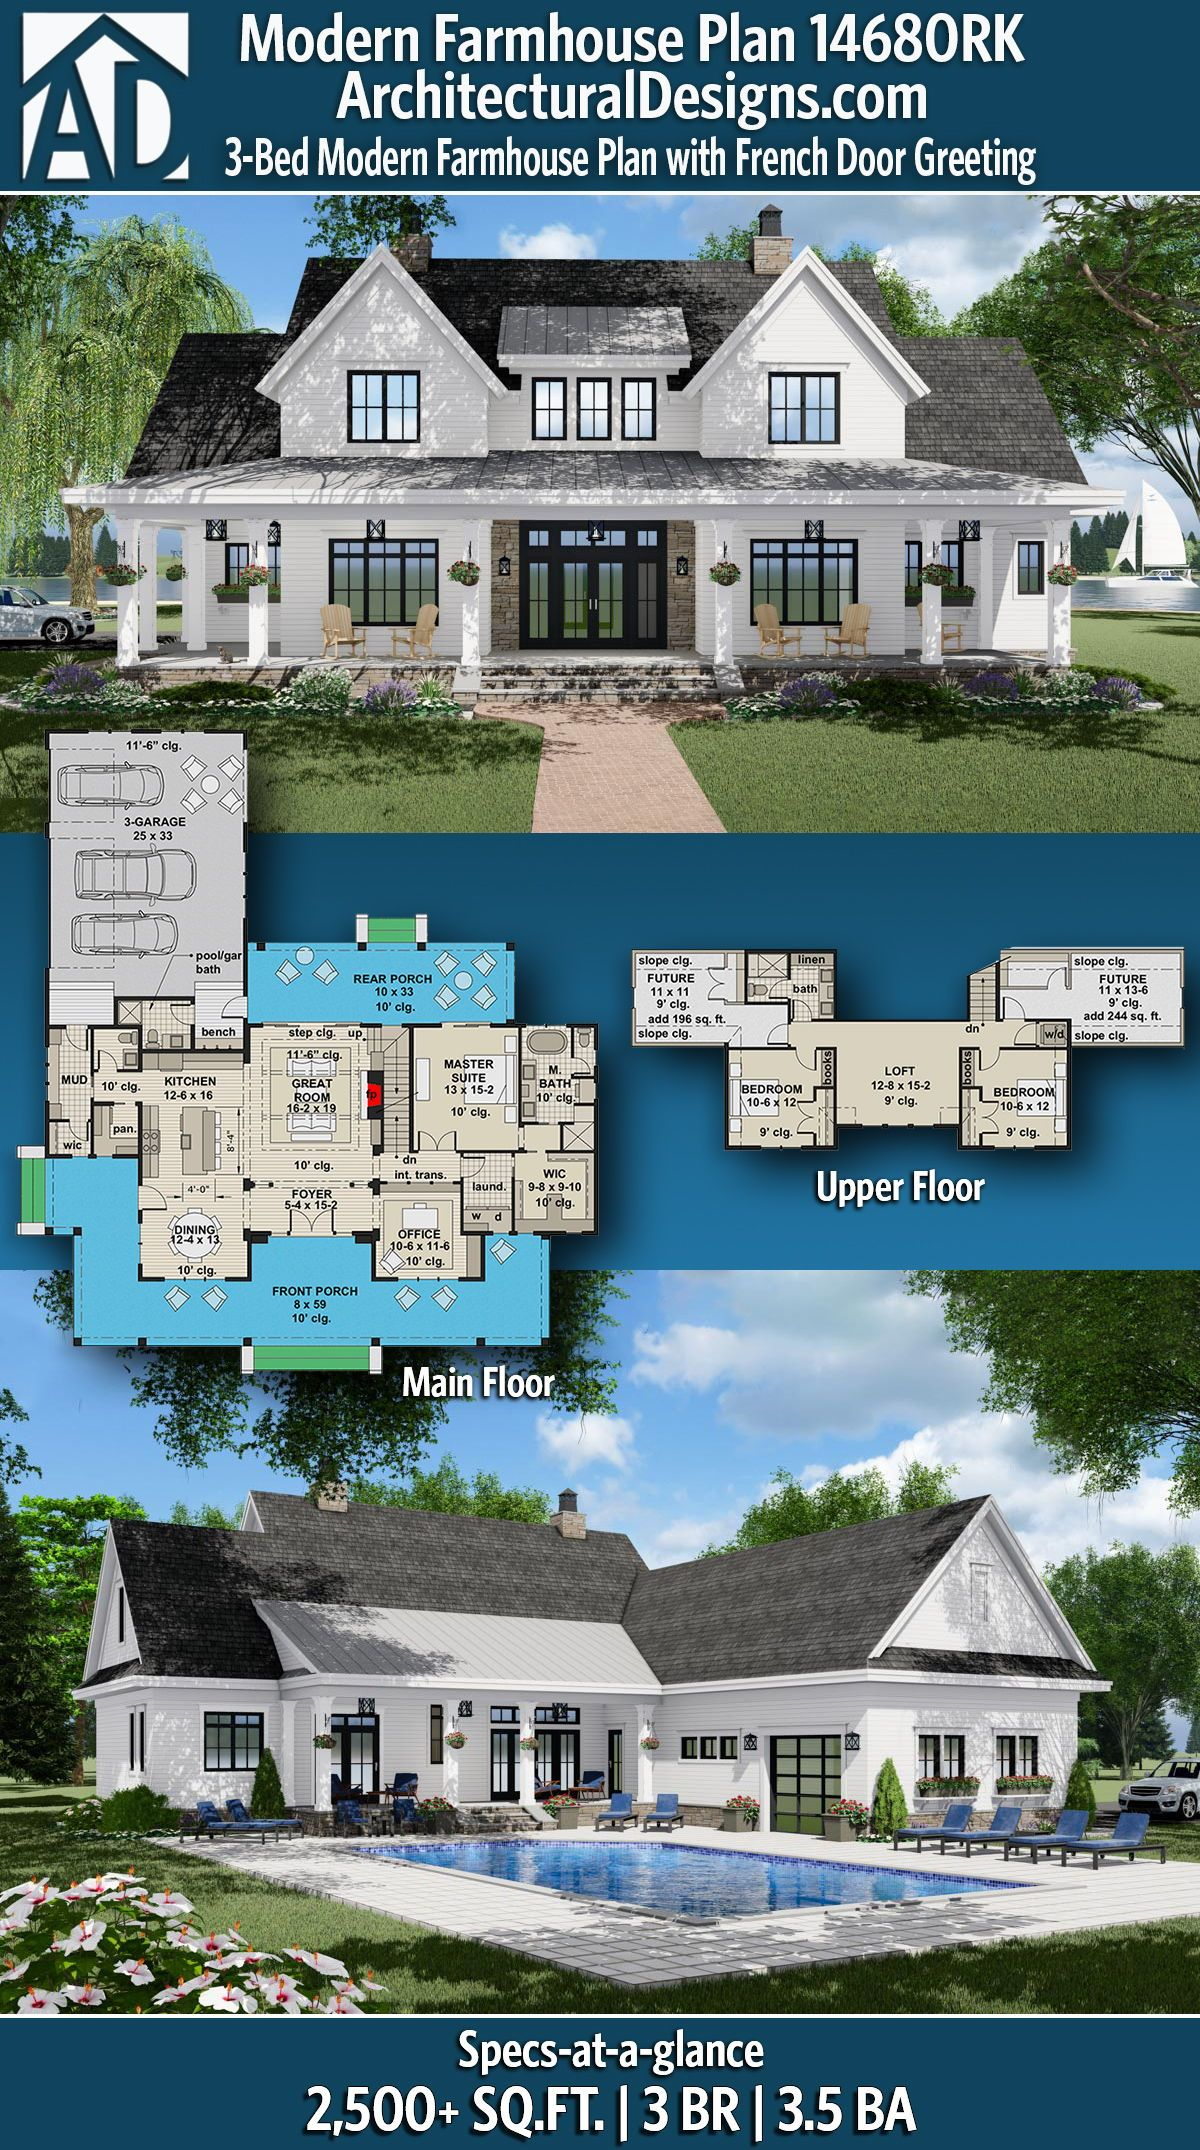 Plan 14680rk 3 Bed Modern Farmhouse Plan With French Door Greeting Modern Farmhouse Plans Farmhouse Plans House Plans Farmhouse